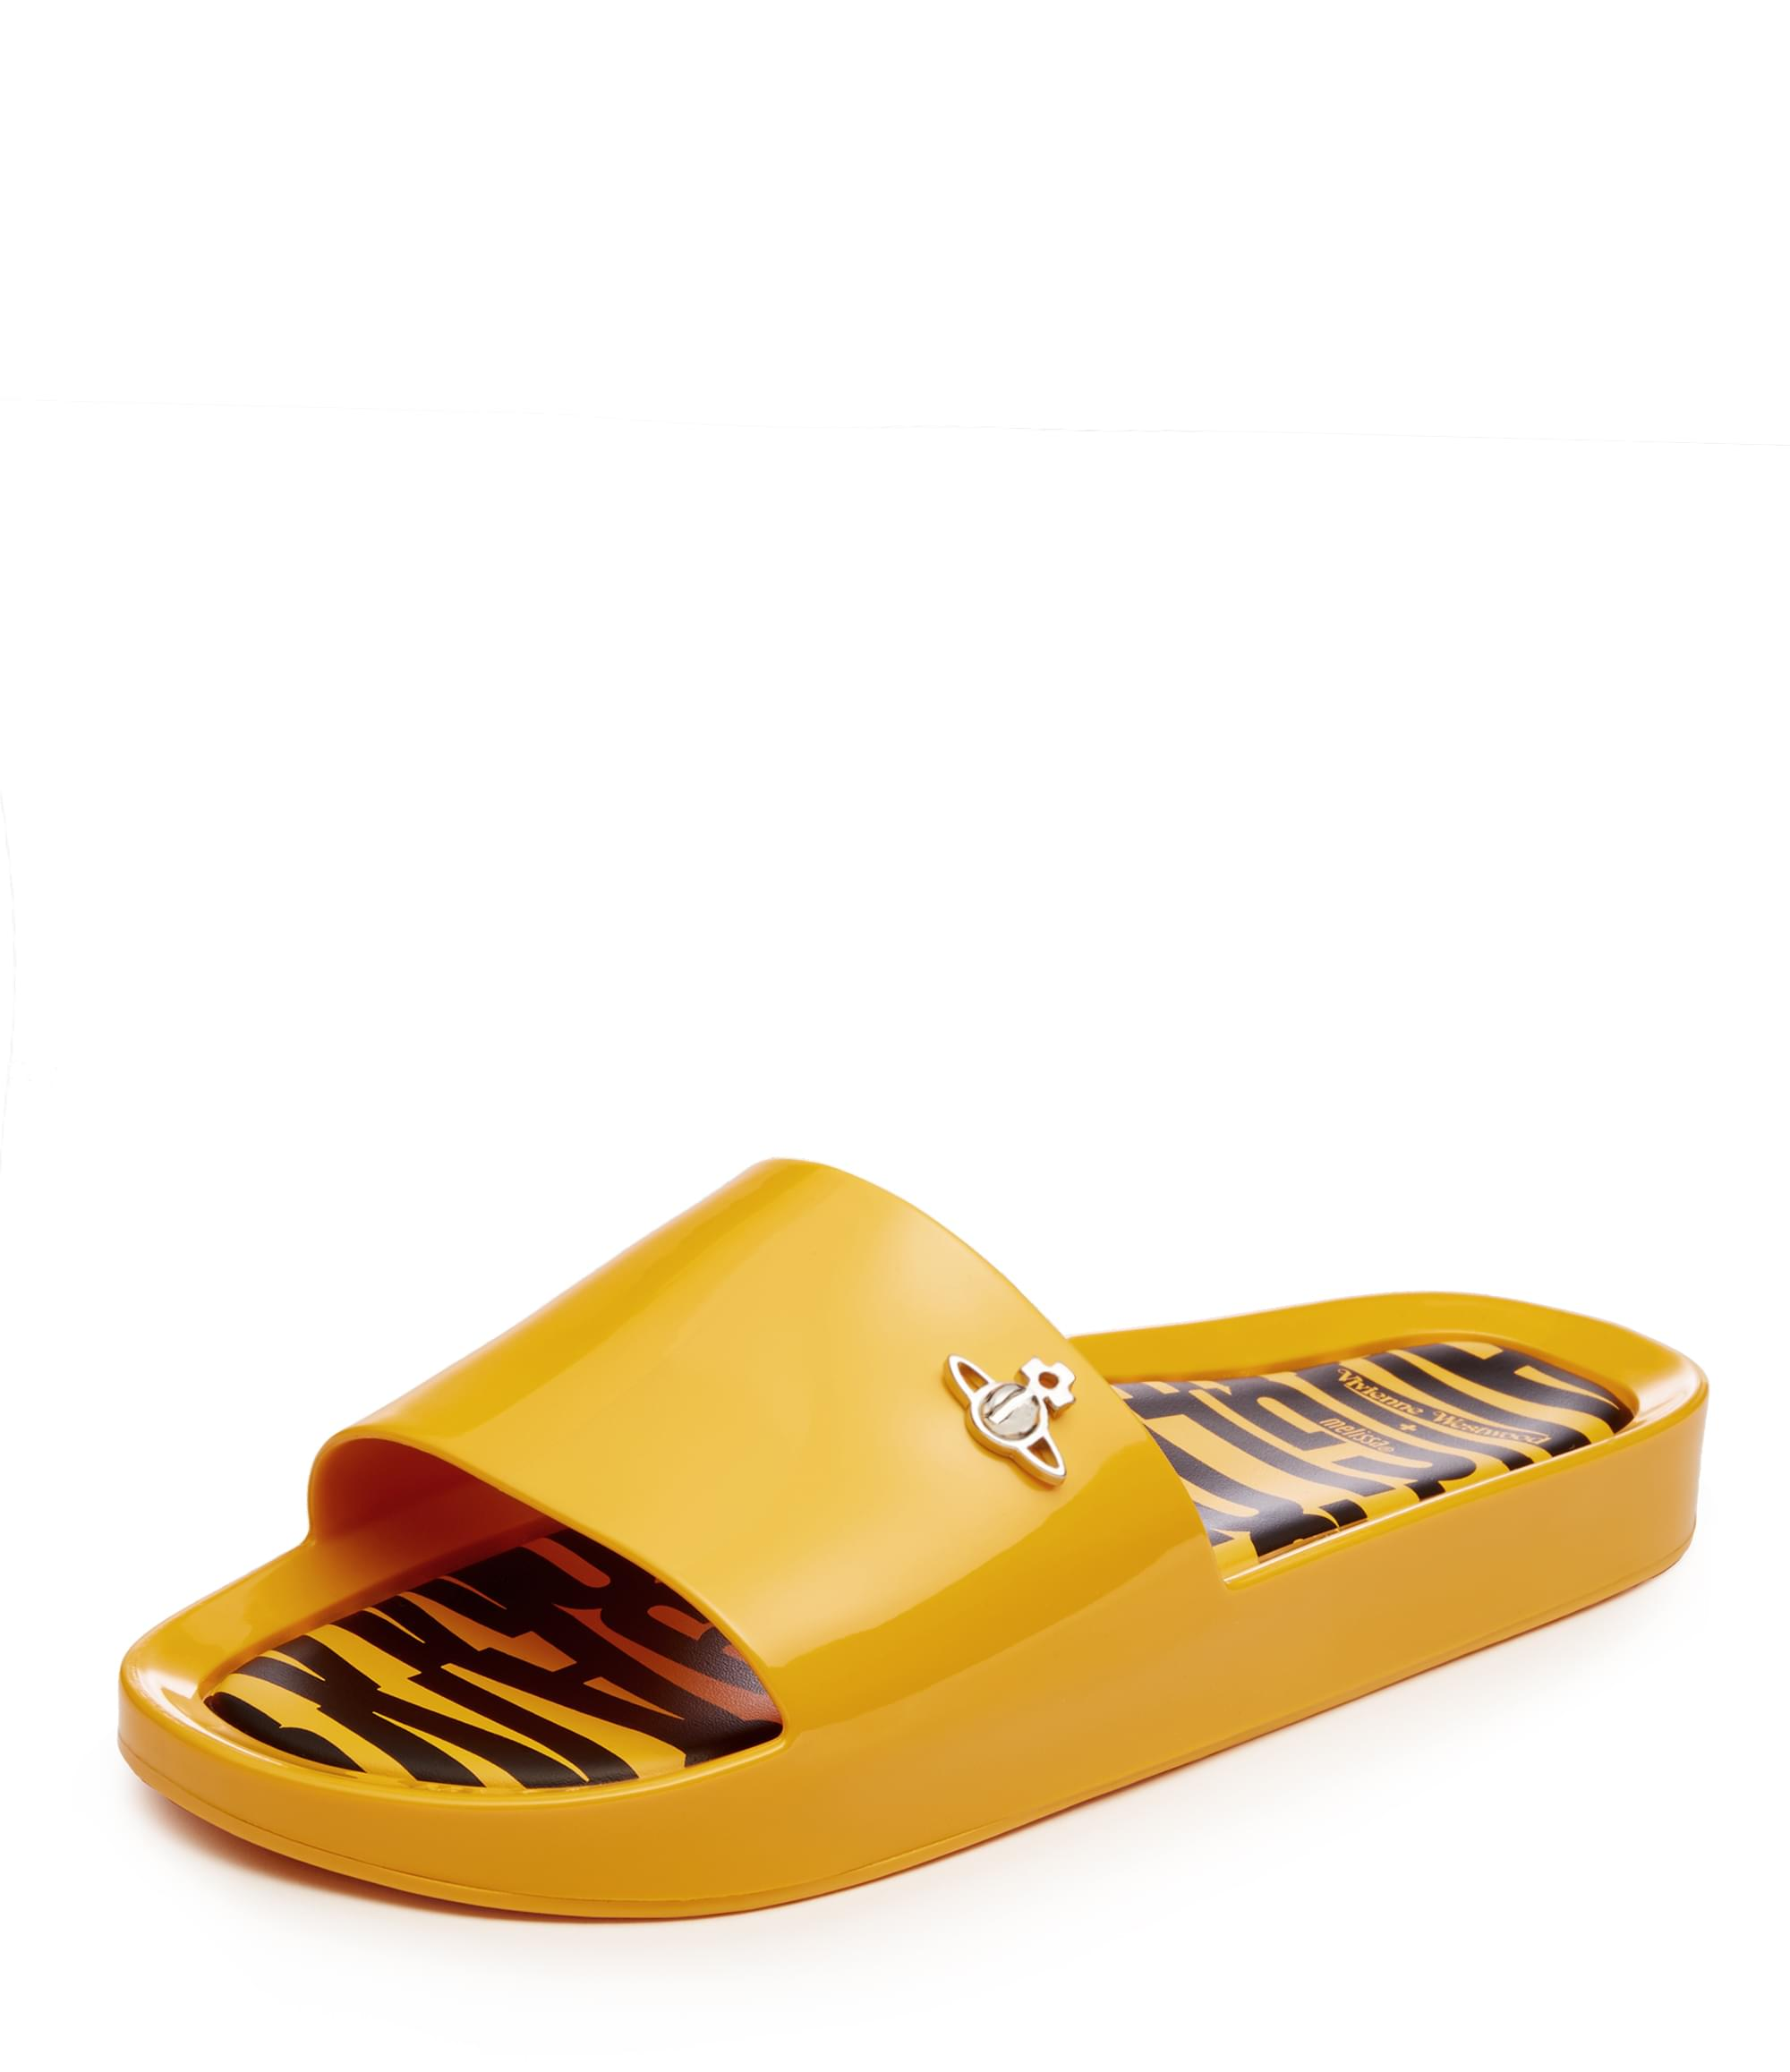 Vivienne Westwood Beach Slides Yellow